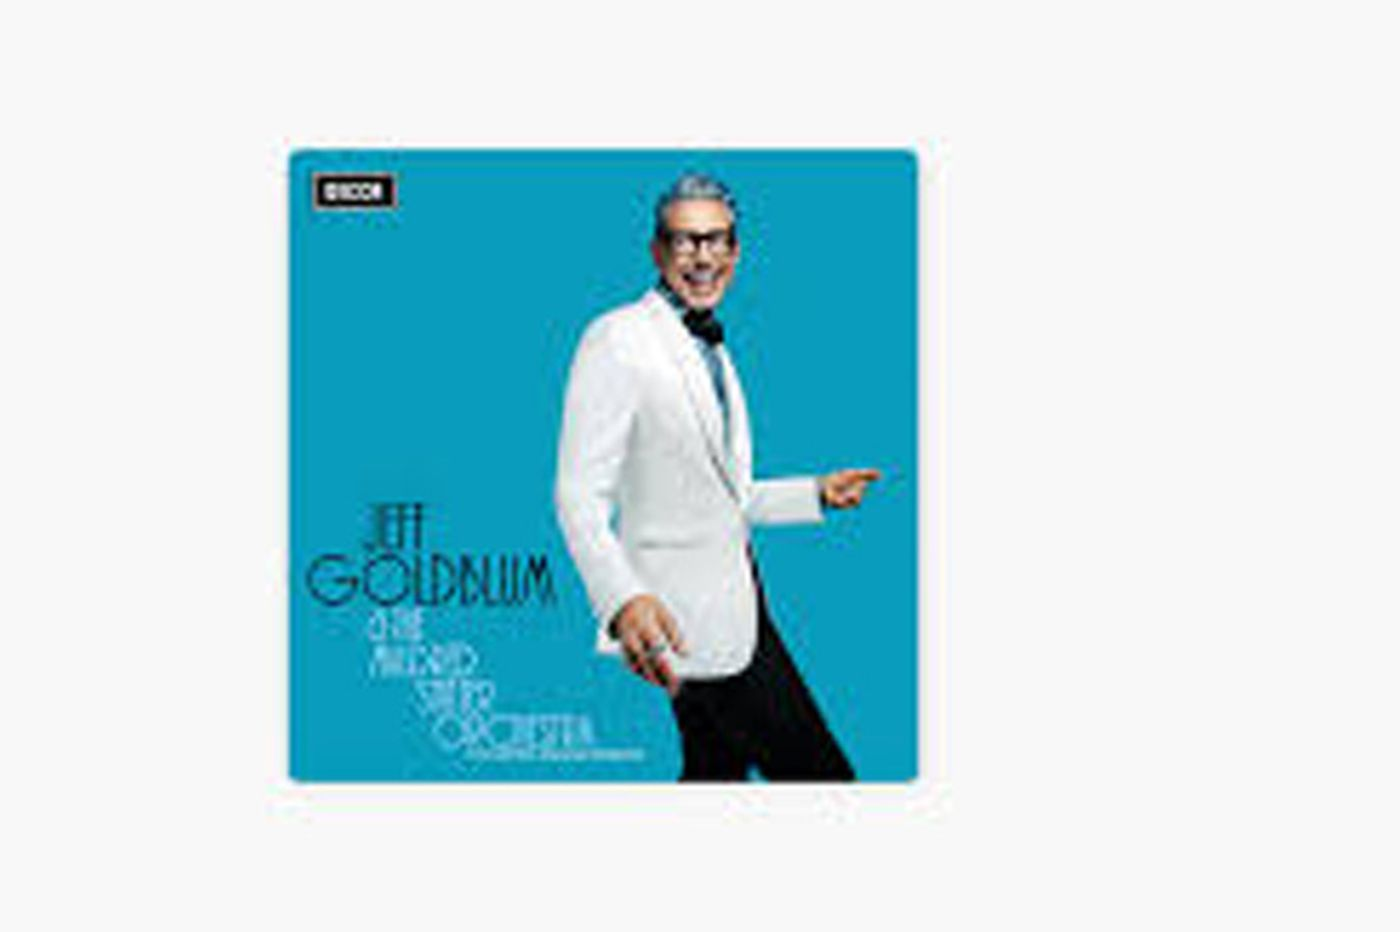 Album reviews: Jeff Goldblum, Earl Sweatshirt and Van Morrison